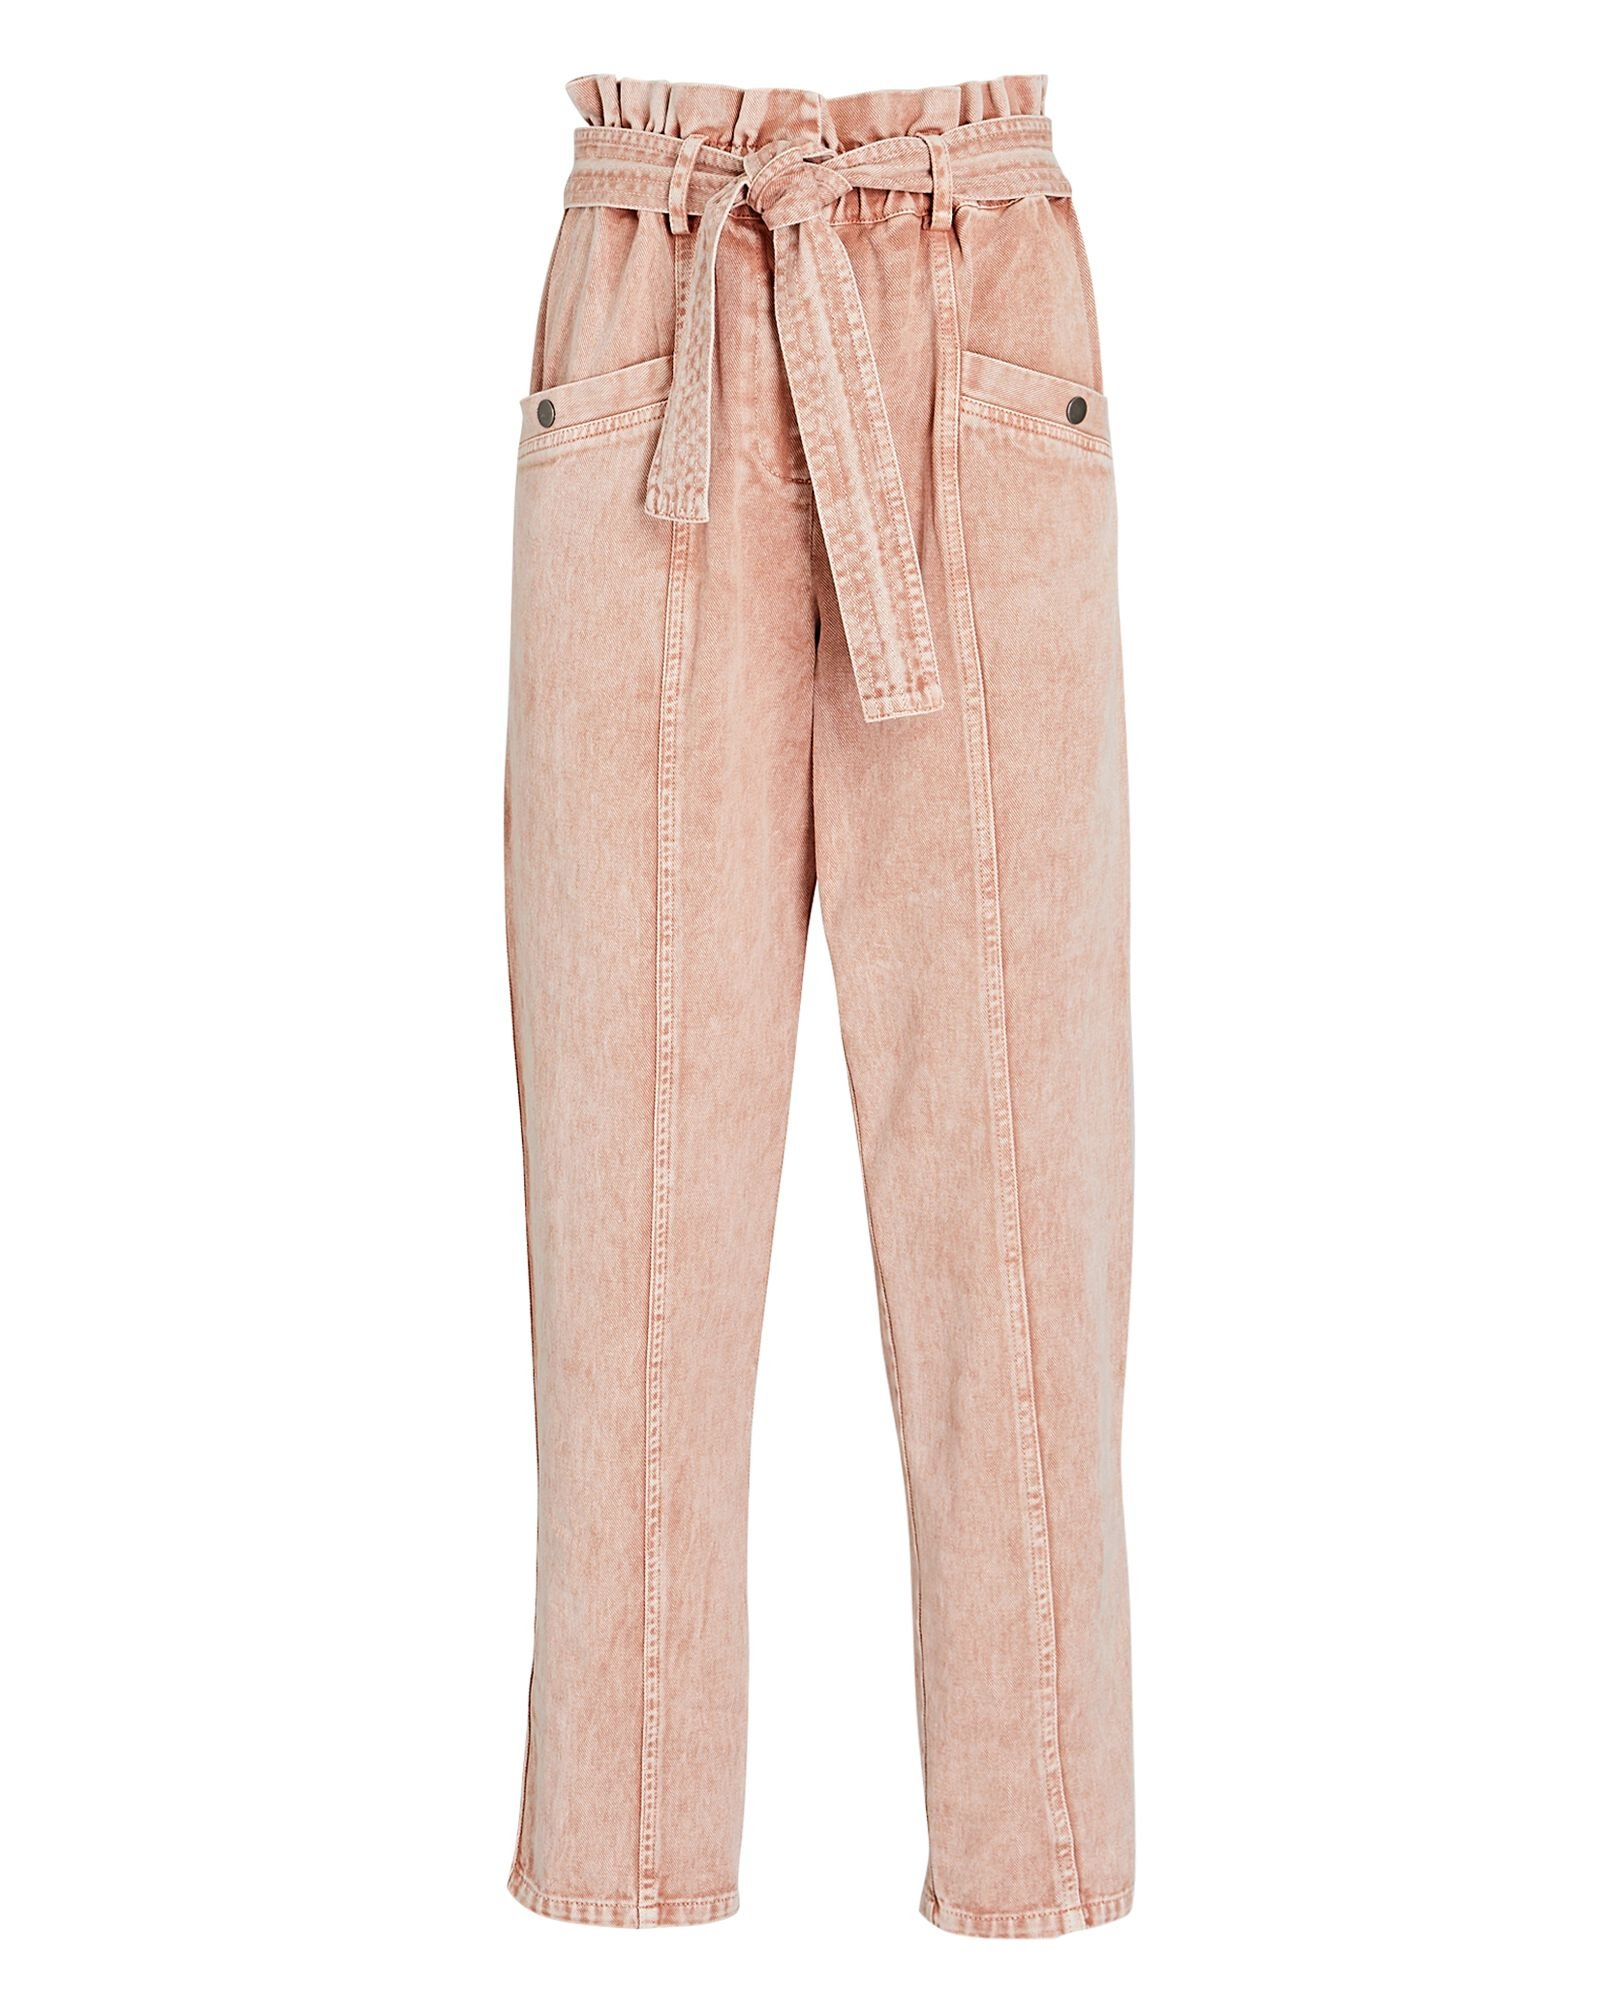 Betty Paperbag Jeans, PINK, hi-res